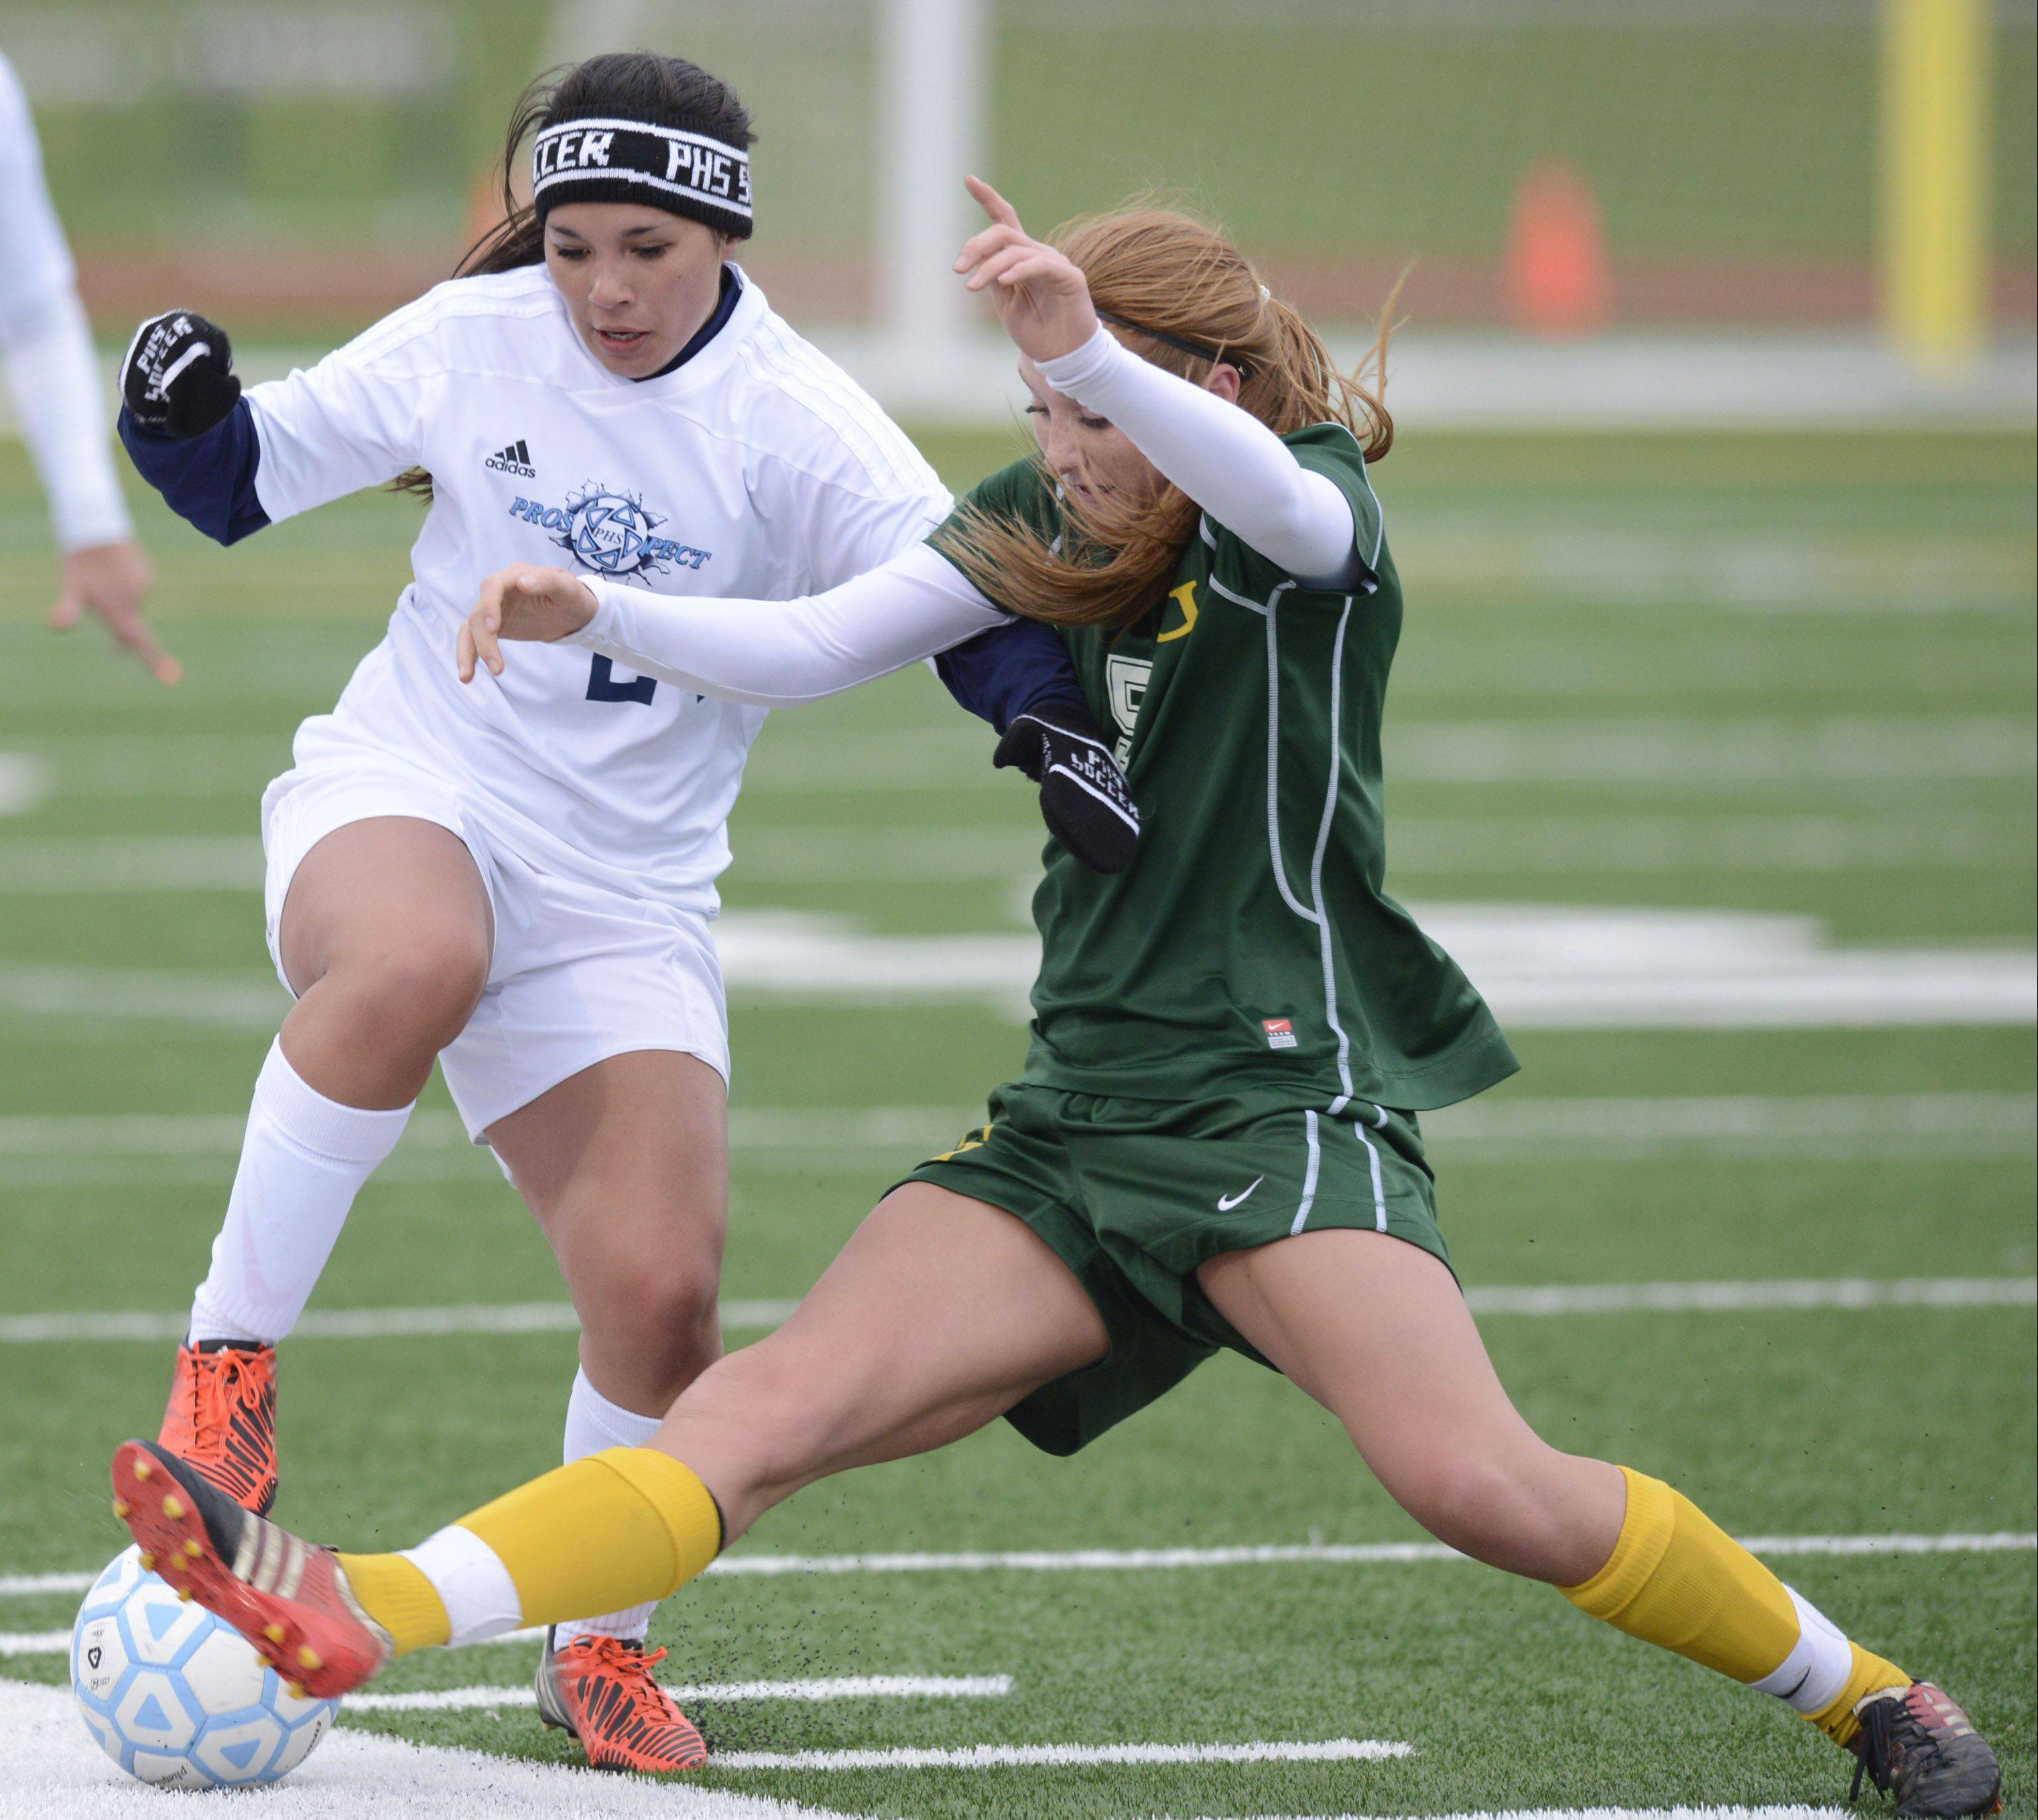 Prospect�s Elena Cukurs, left, and Elk Grove�s Kelly Naughton charge toward the ball Friday at Prospect.